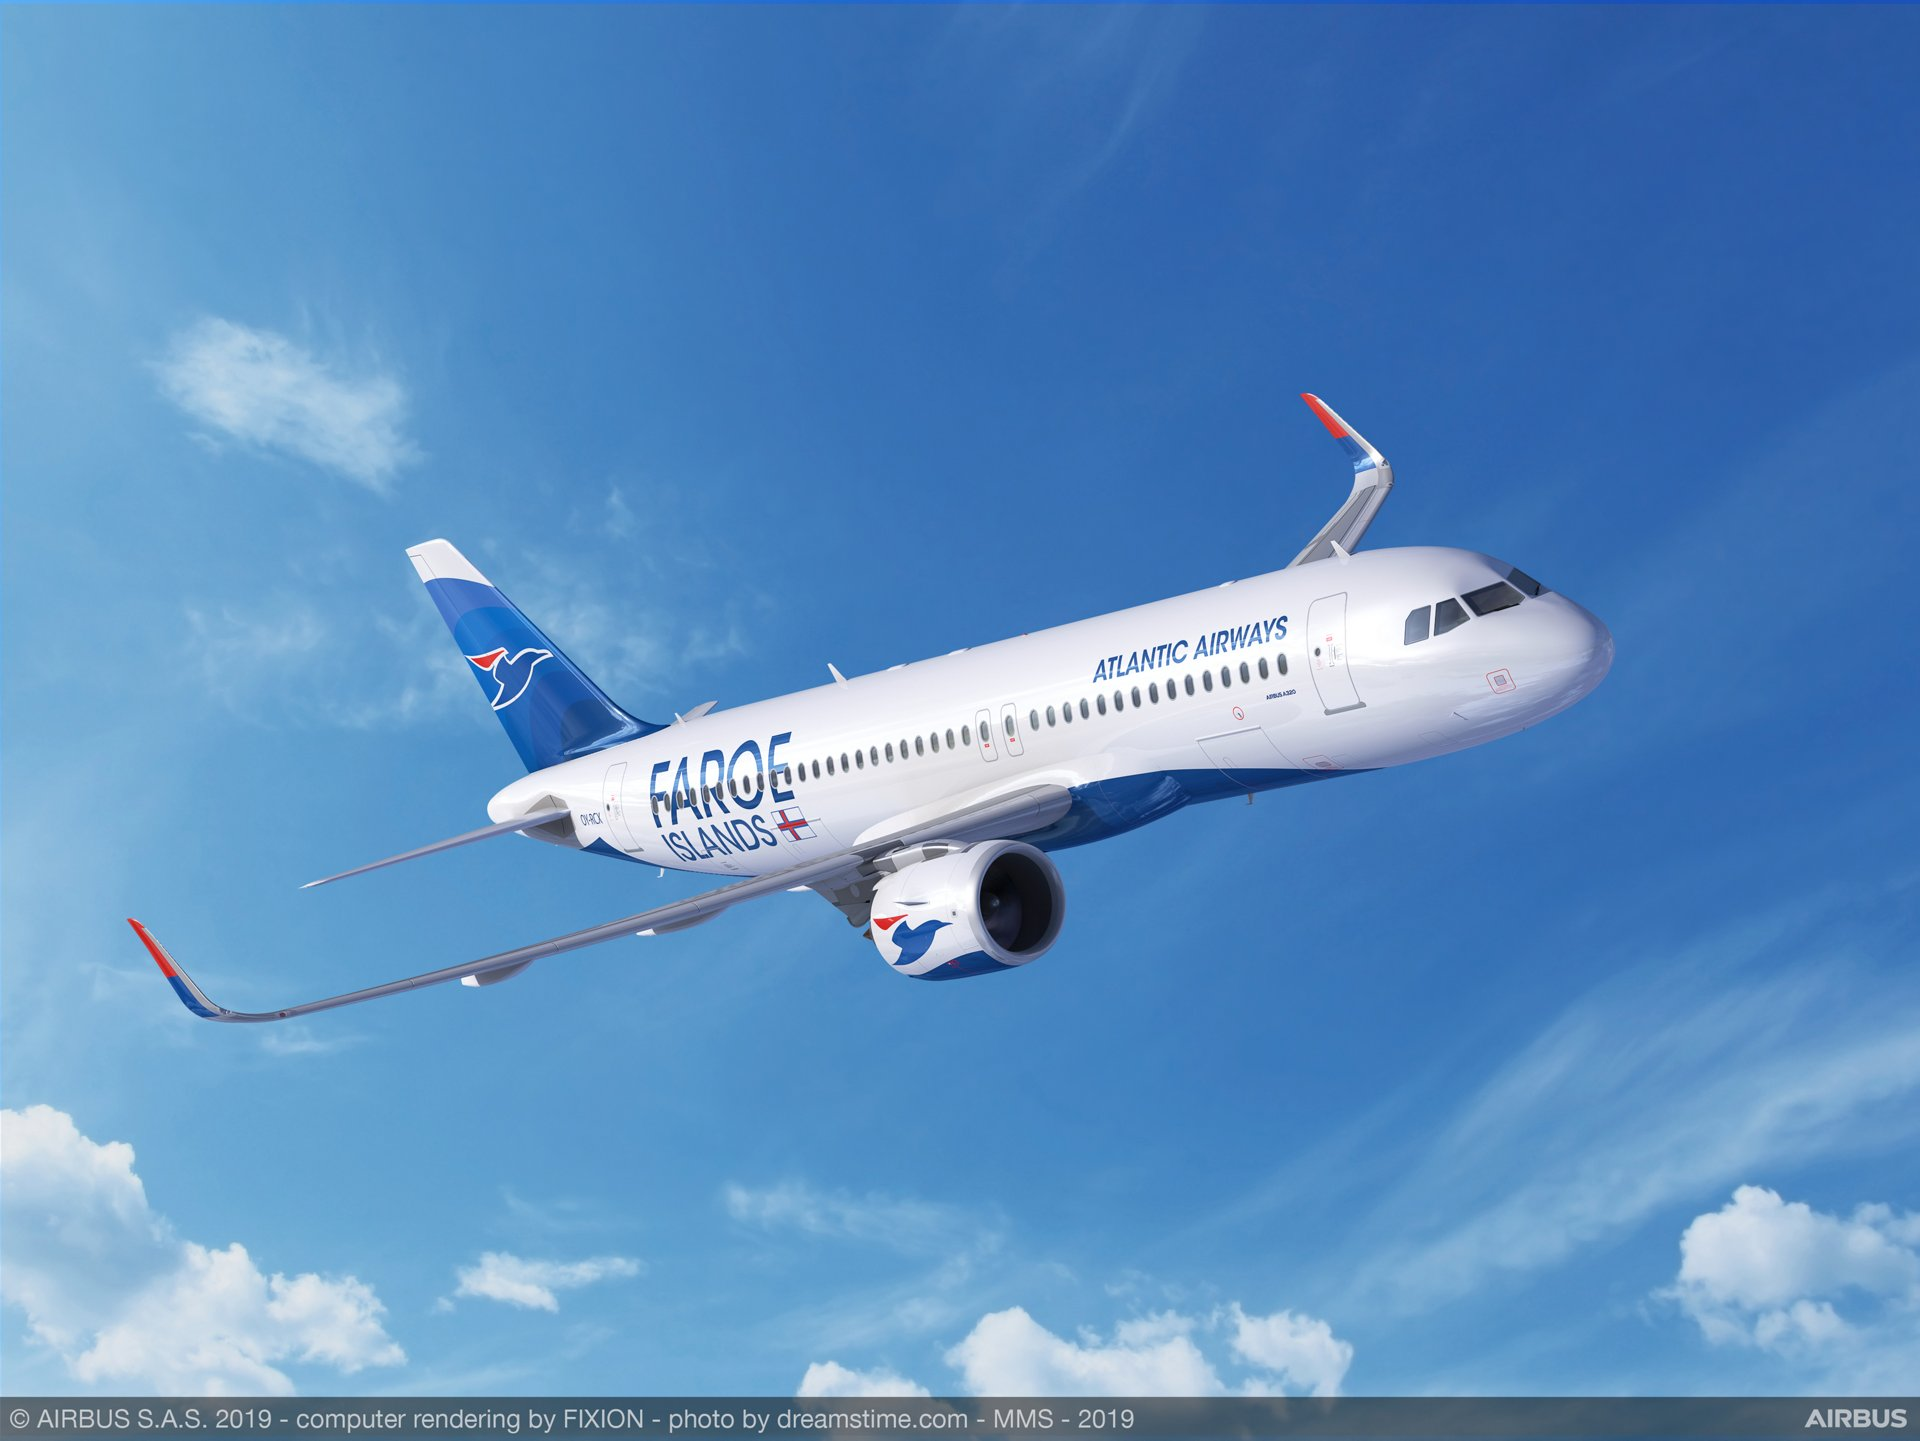 Faroe Islands flag carrier Atlantic Airways became an A320neo customer with its purchase agreement signed for two aircraft